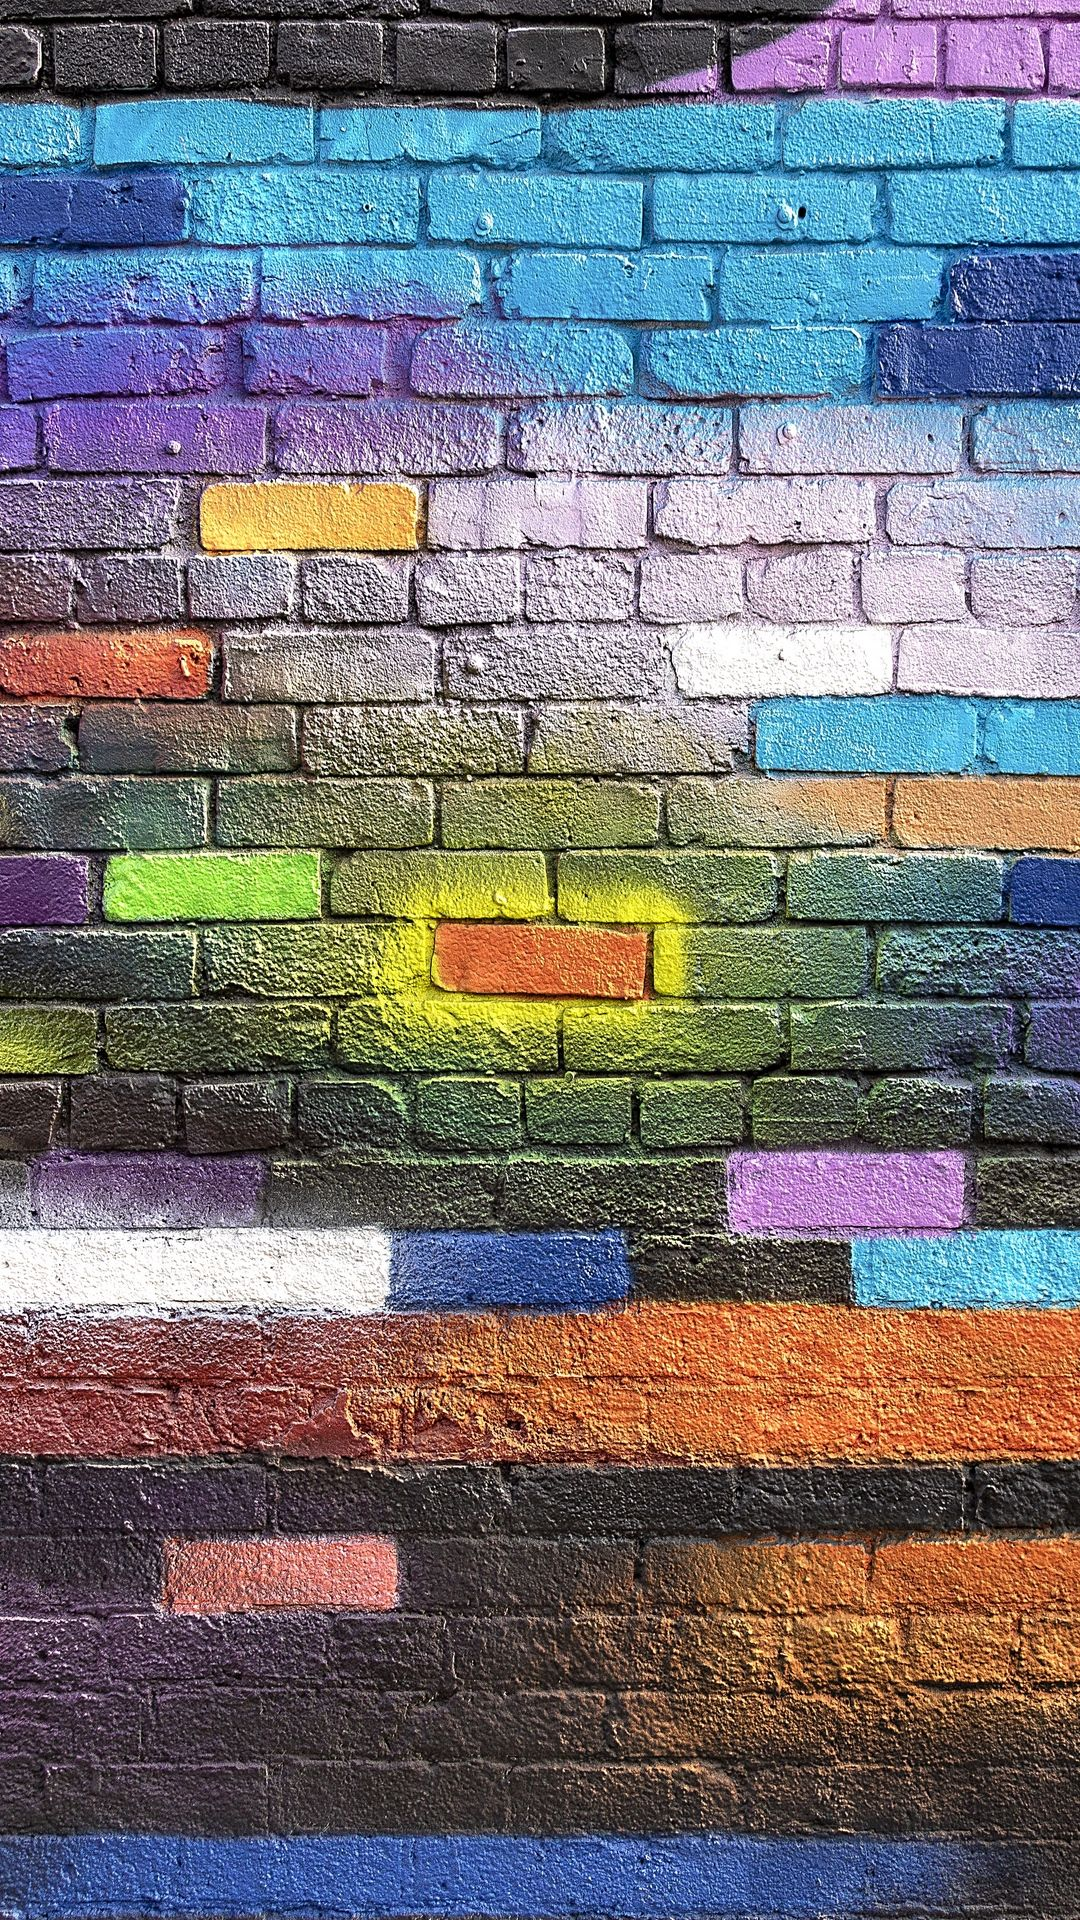 Brick Test1 Wall Colorful Textures Wallpaper